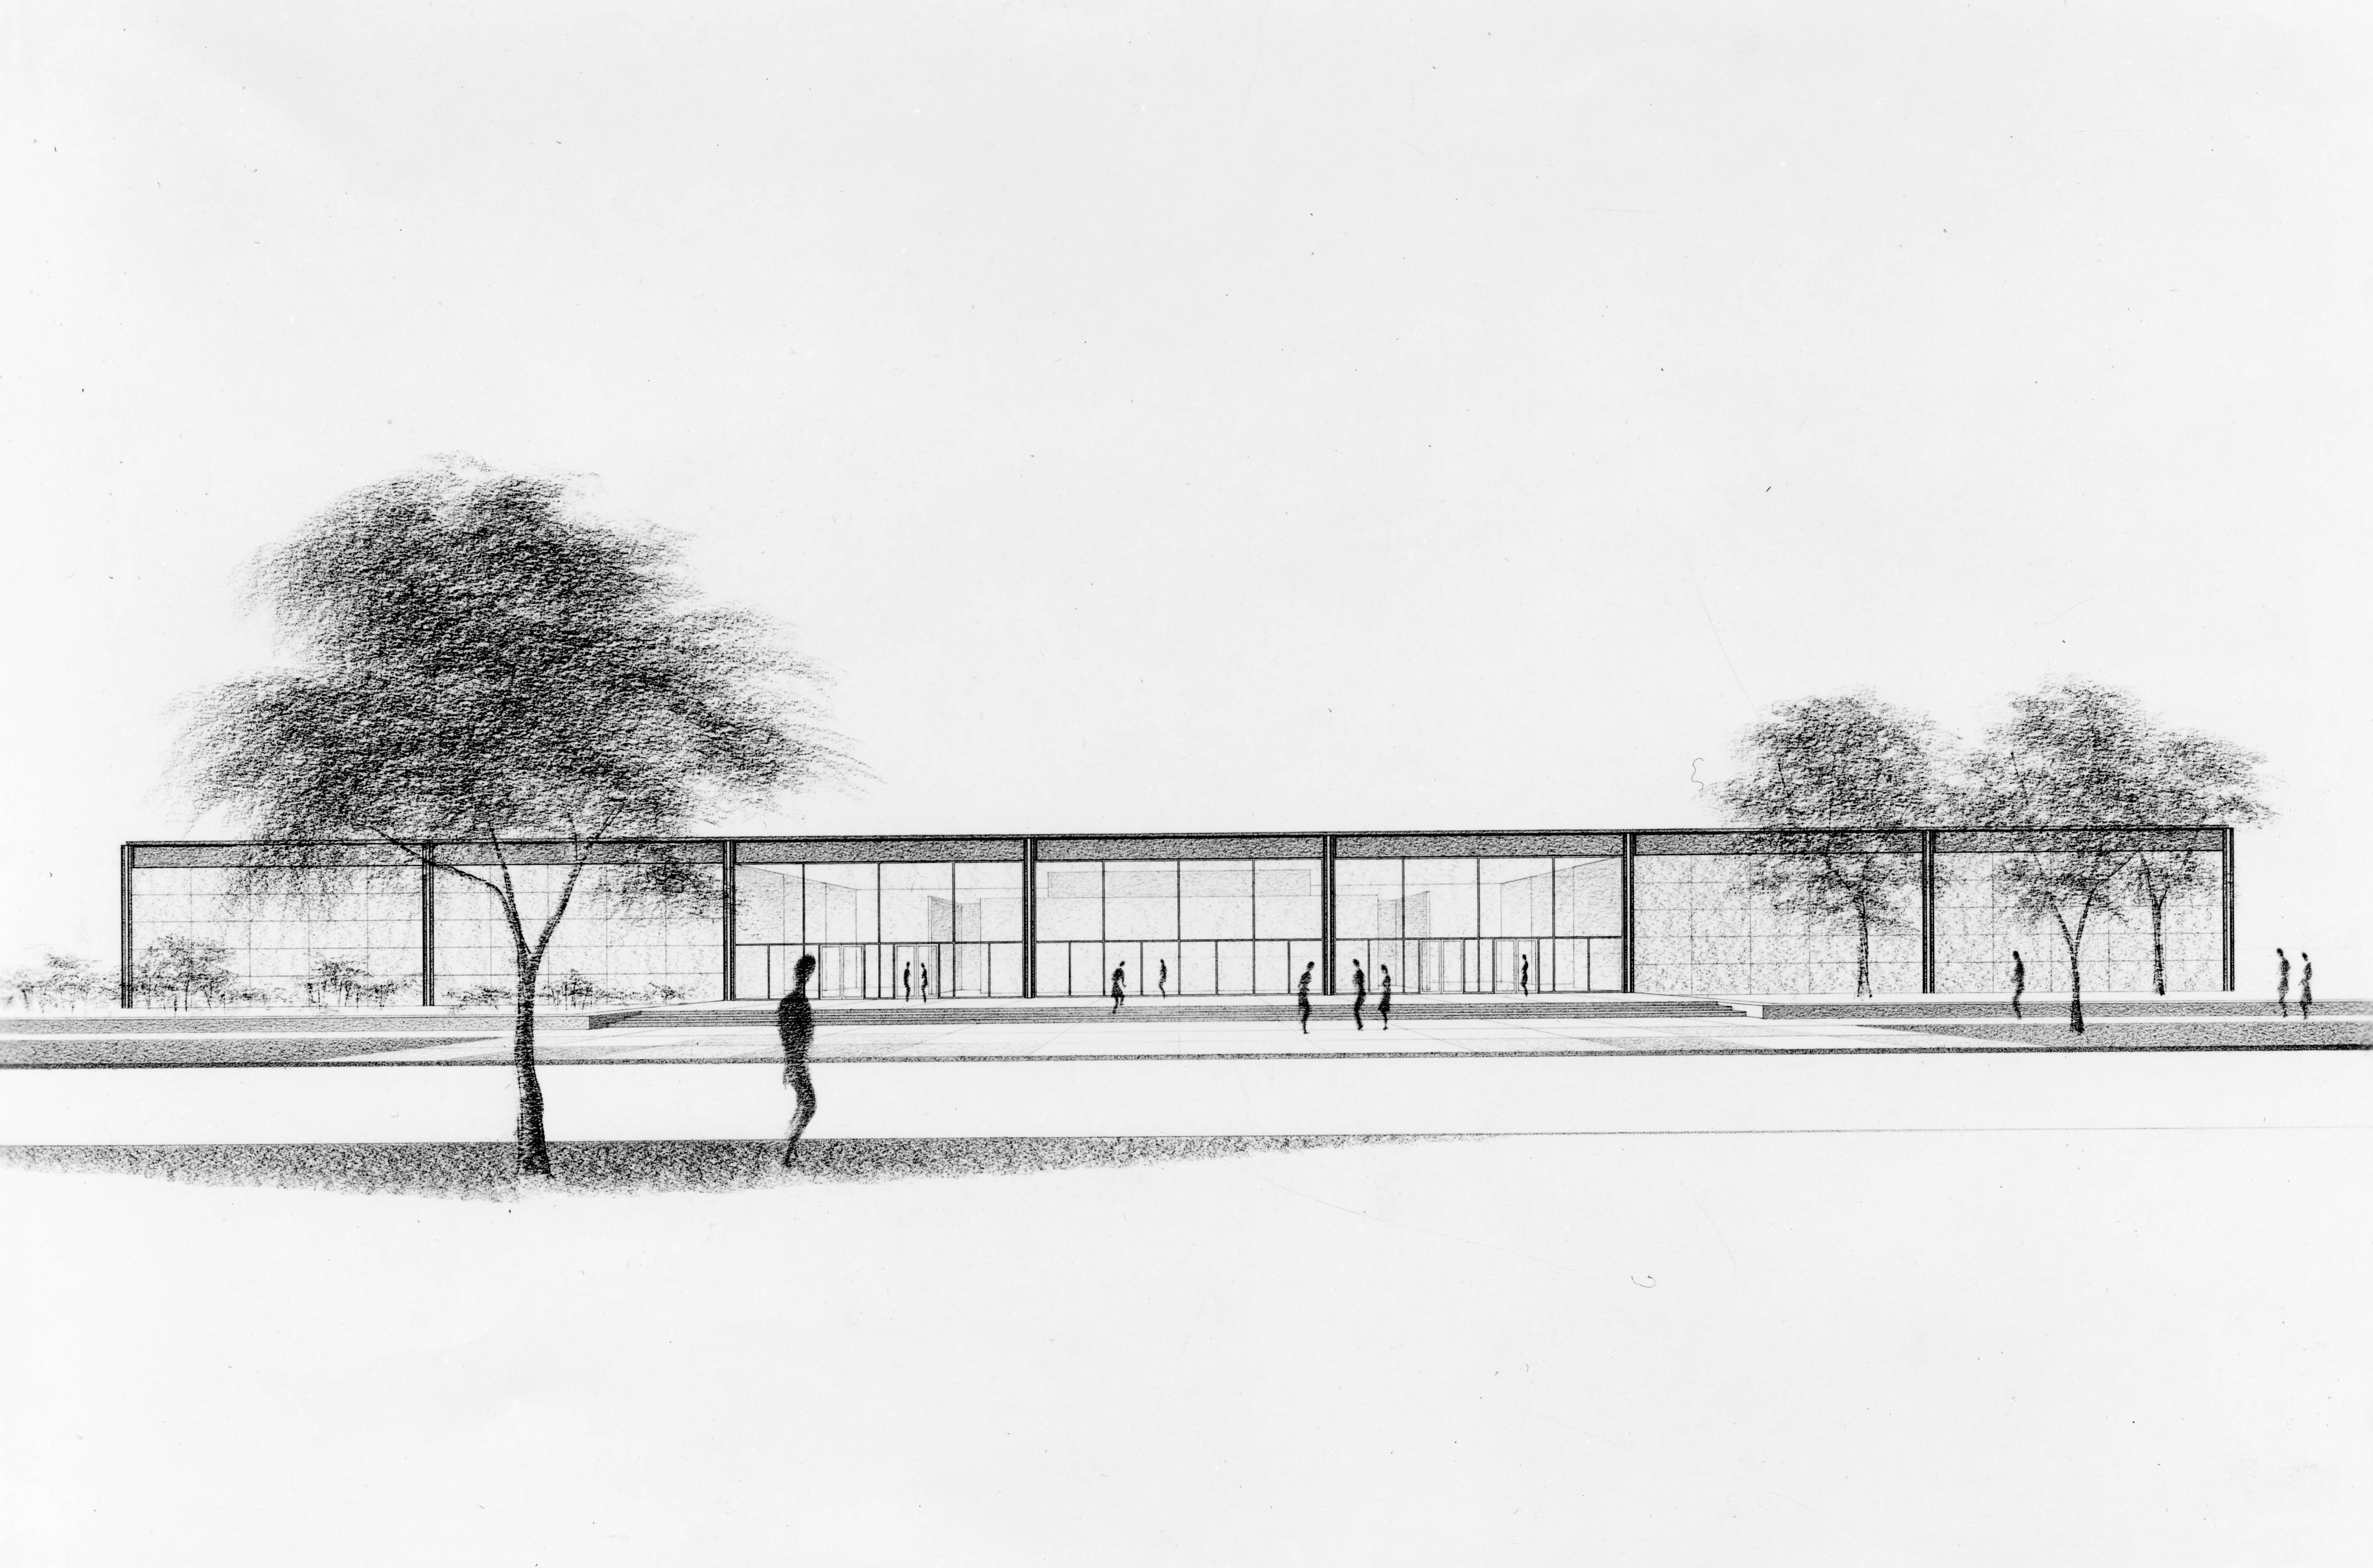 Mies Building